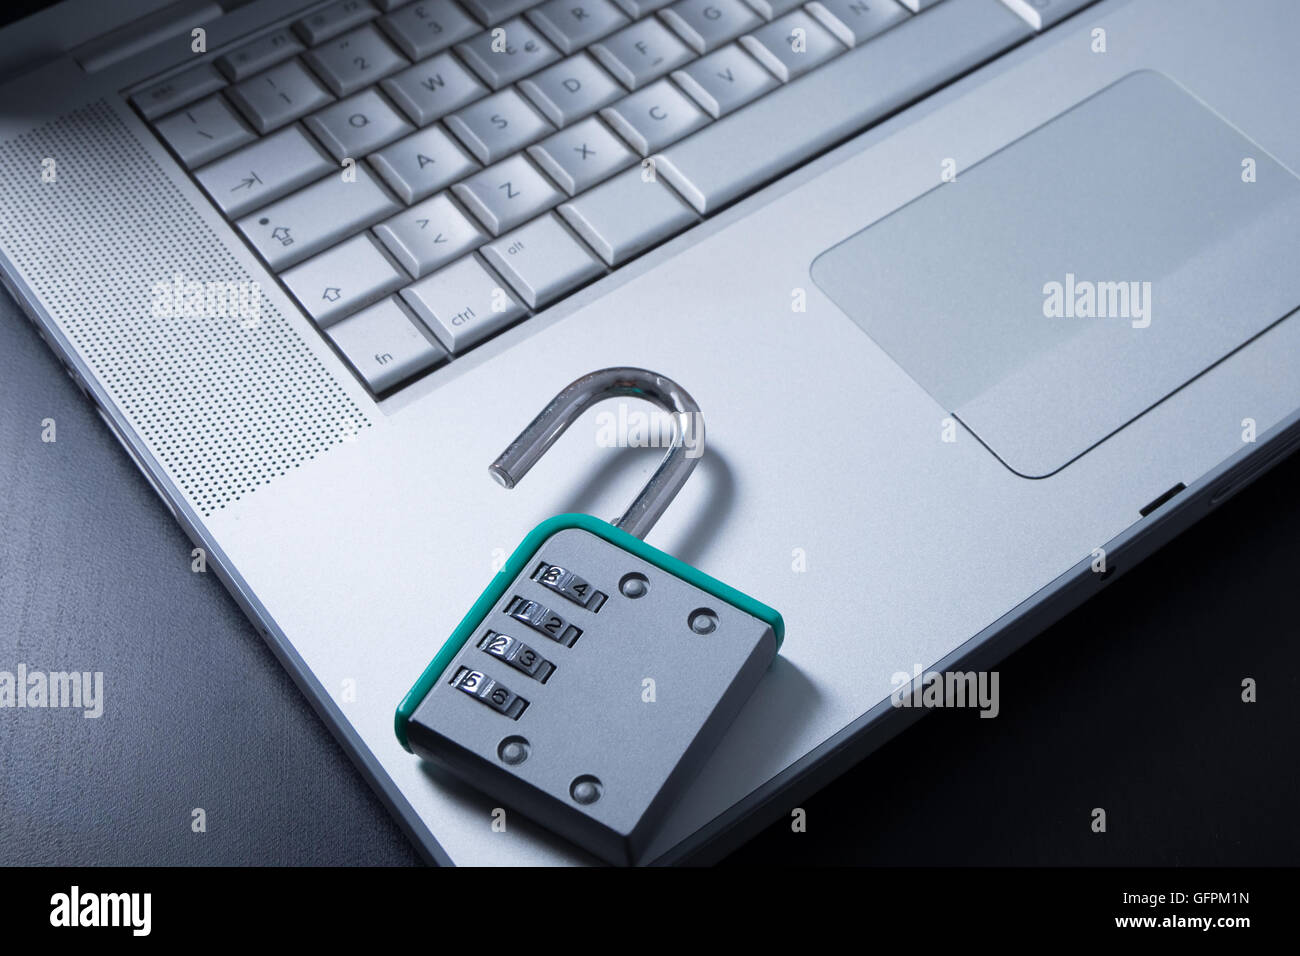 Padlock on laptop meaning protection from hacker and virus - Stock Image